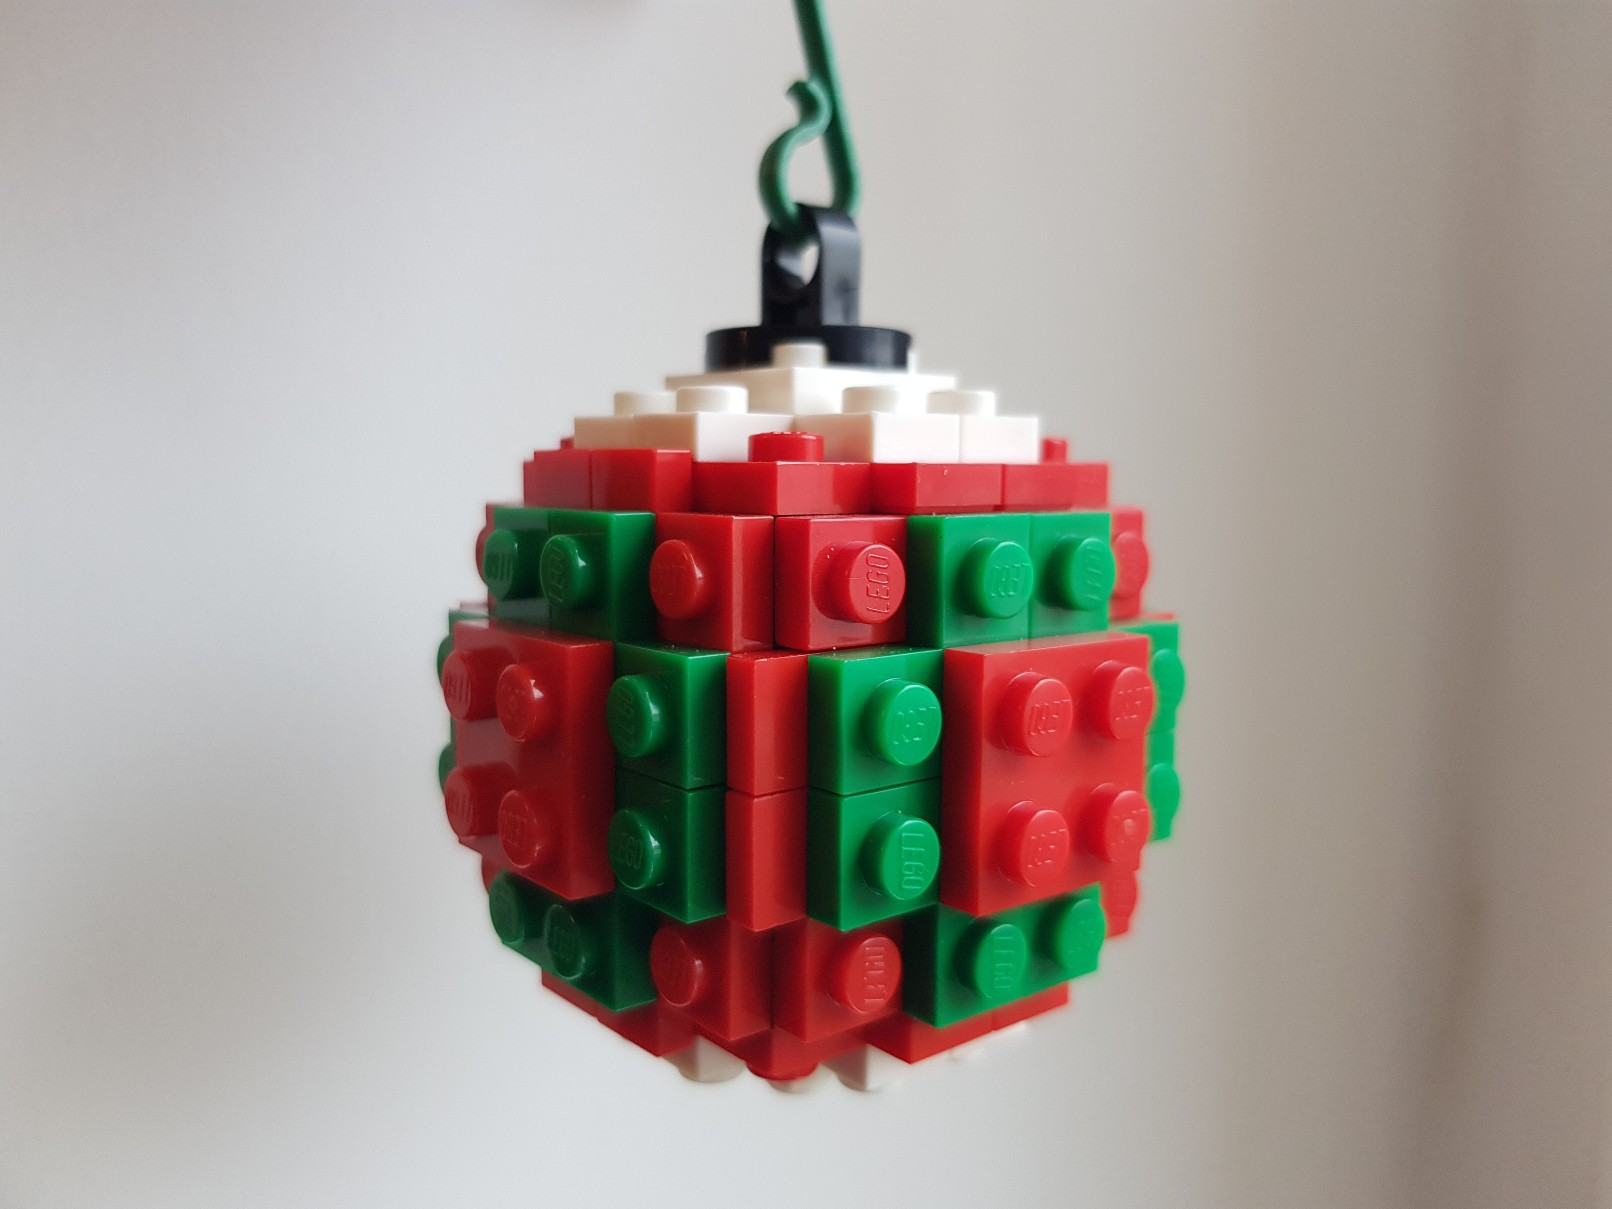 lego moc christmas baubles ornament red green ball 2